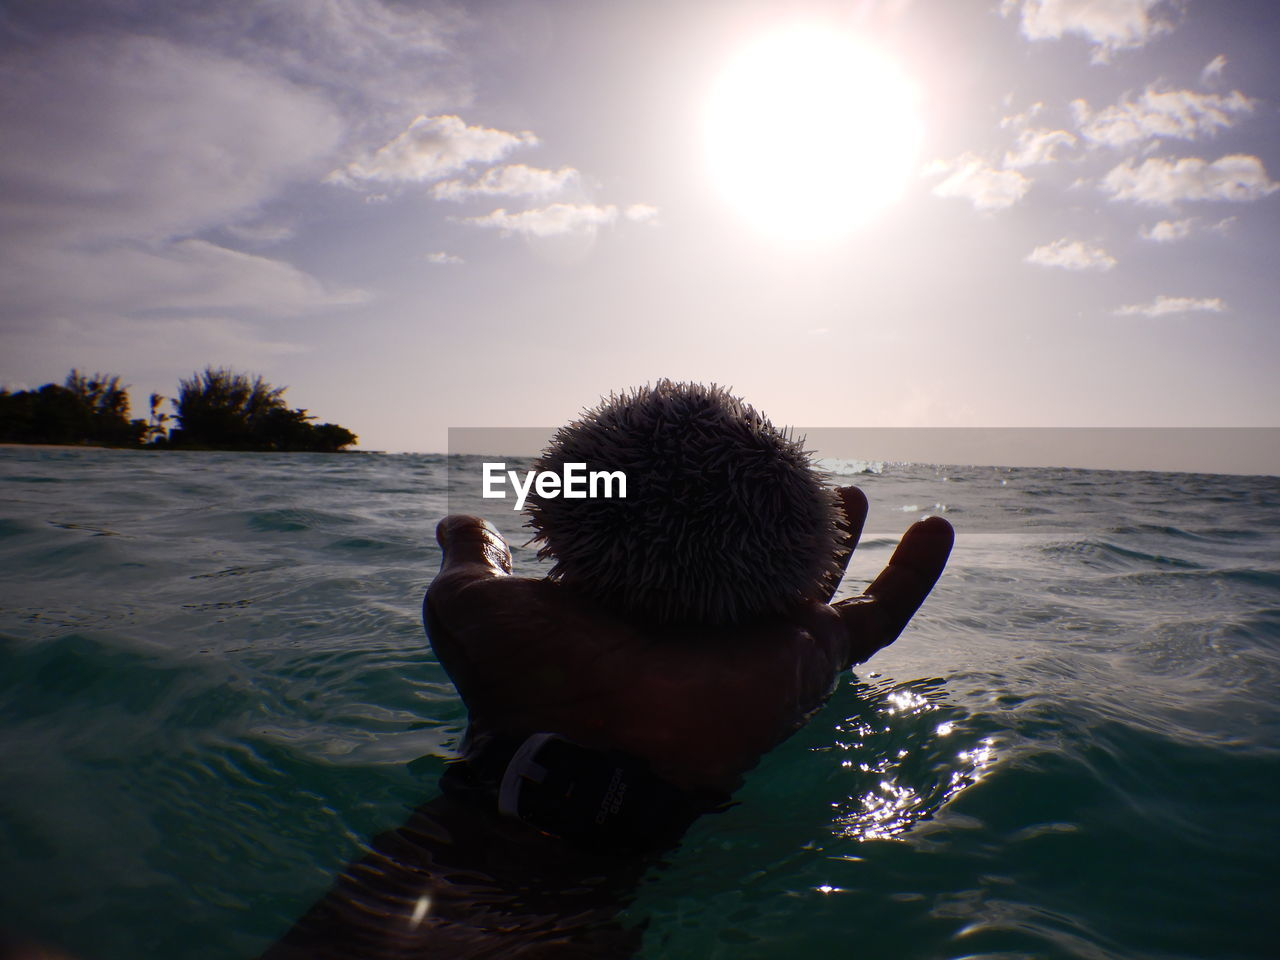 sky, sea, water, real people, lifestyles, leisure activity, hand, human hand, one person, nature, sunlight, beauty in nature, human body part, men, sun, scenics - nature, cloud - sky, unrecognizable person, body part, outdoors, horizon over water, finger, human arm